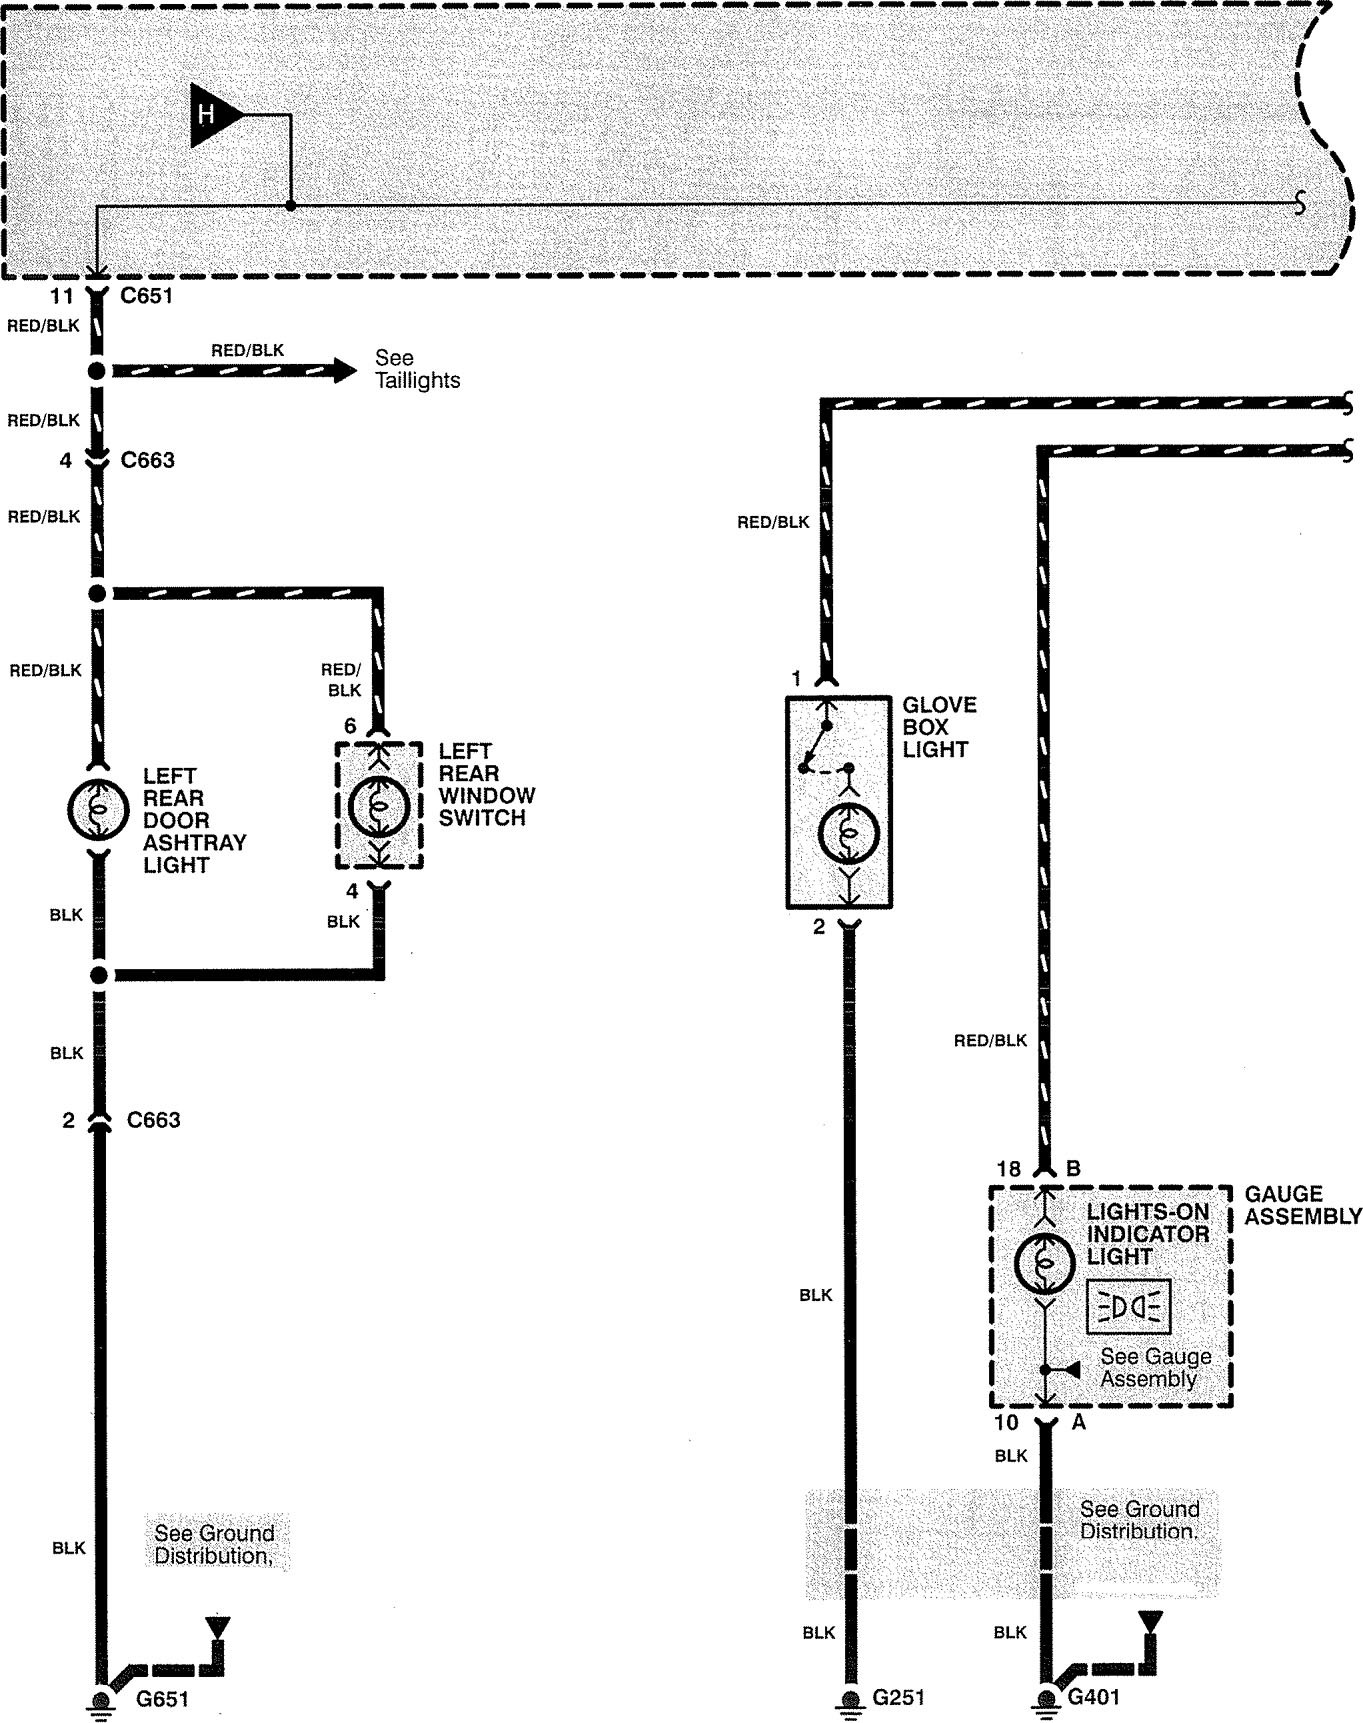 1999 Acura Rl Vacuum Diagram Enthusiast Wiring Diagrams Legend Images Gallery